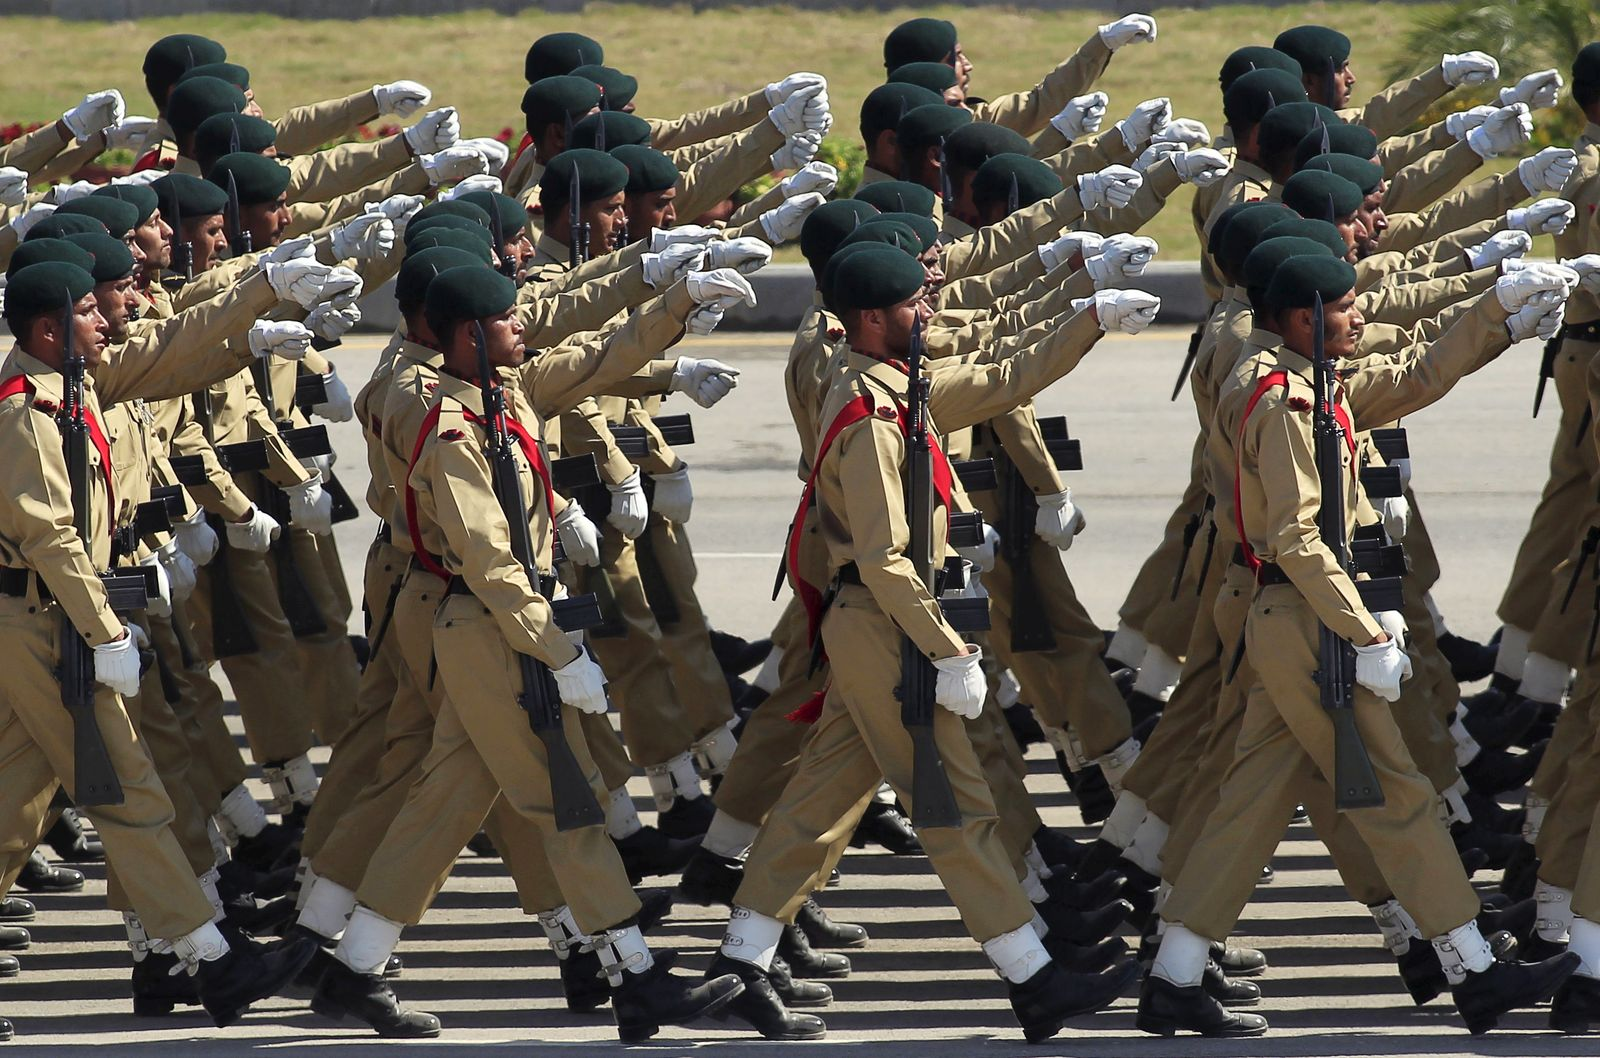 India and Pakistan: Two Nations Always At the Brink of Nuclear War